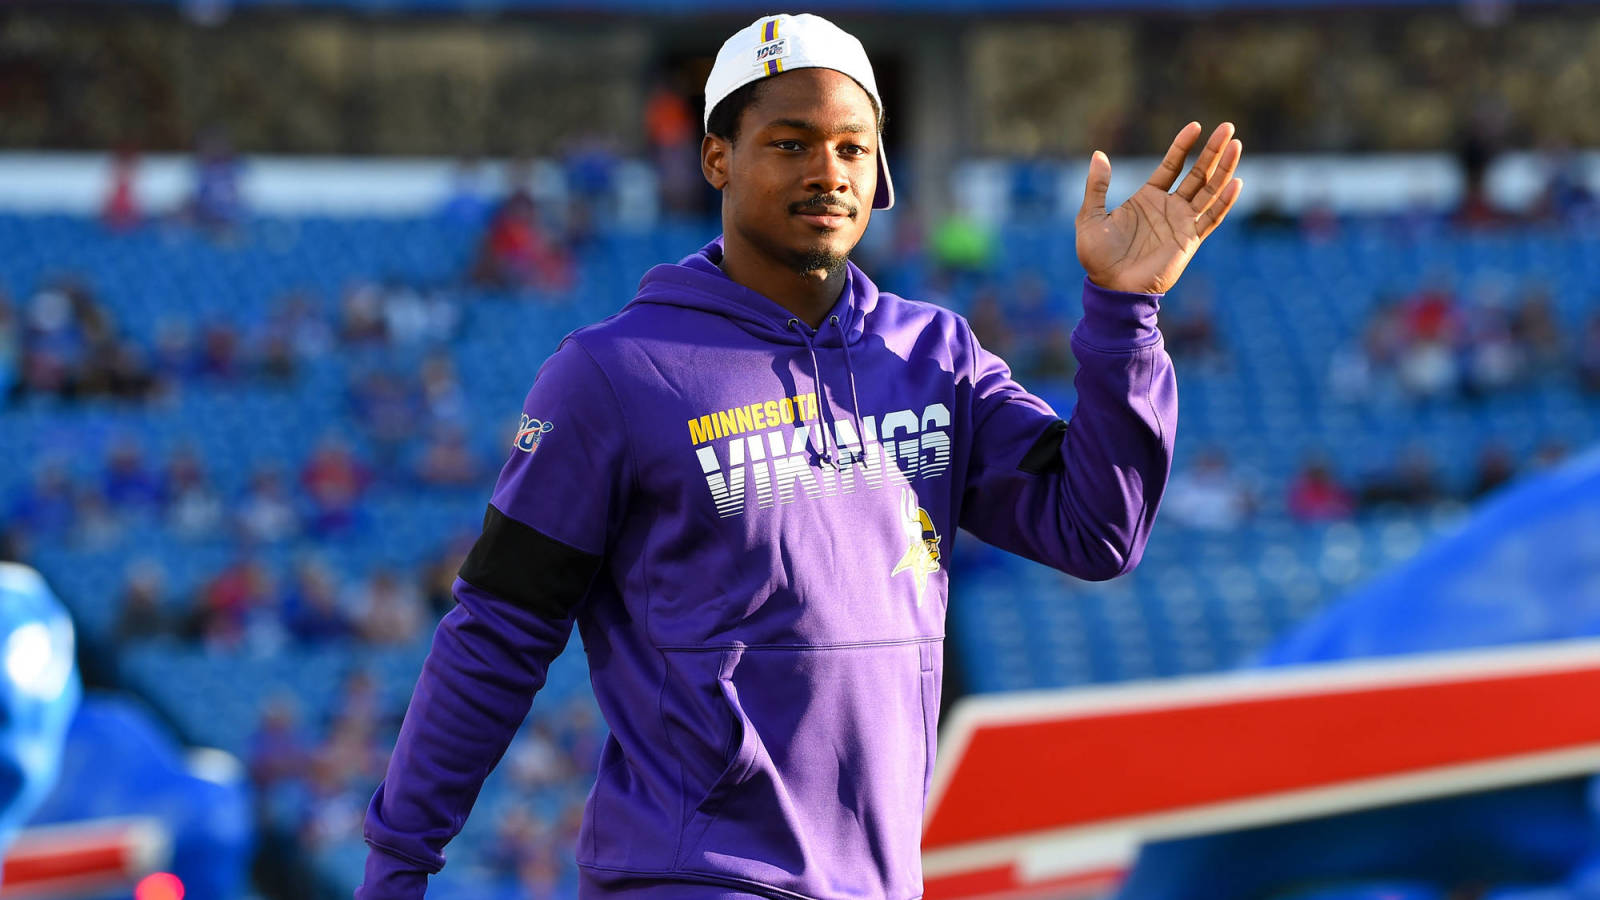 Could Vikings trade Stefon Diggs this offseason?